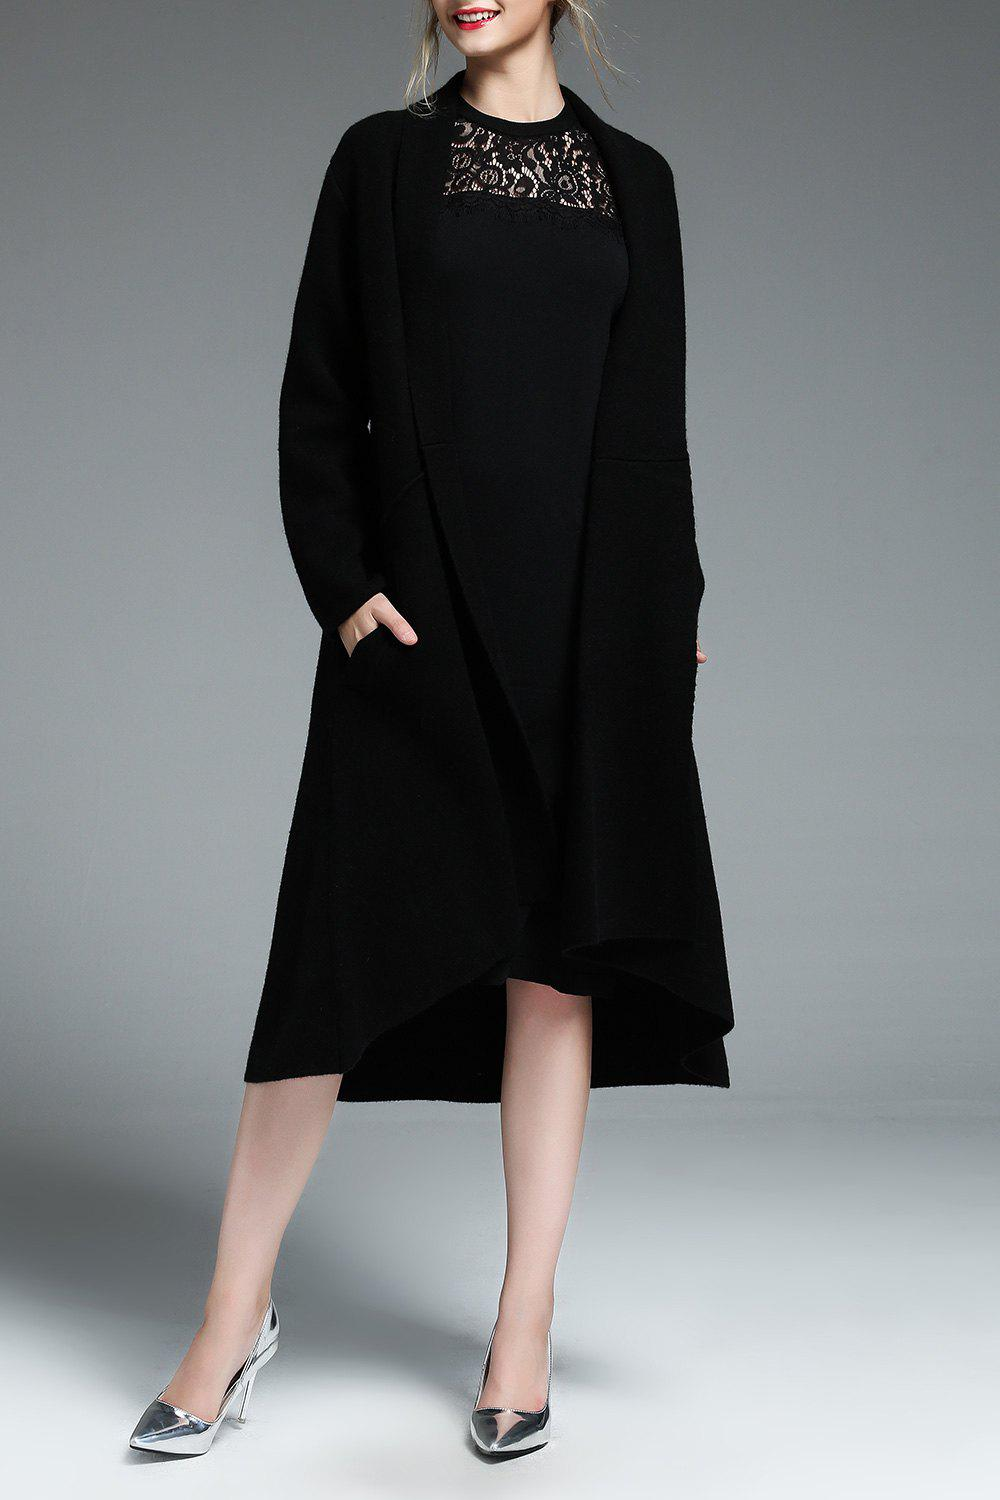 Wool Blend Asymmetric Swing Coat - BLACK M